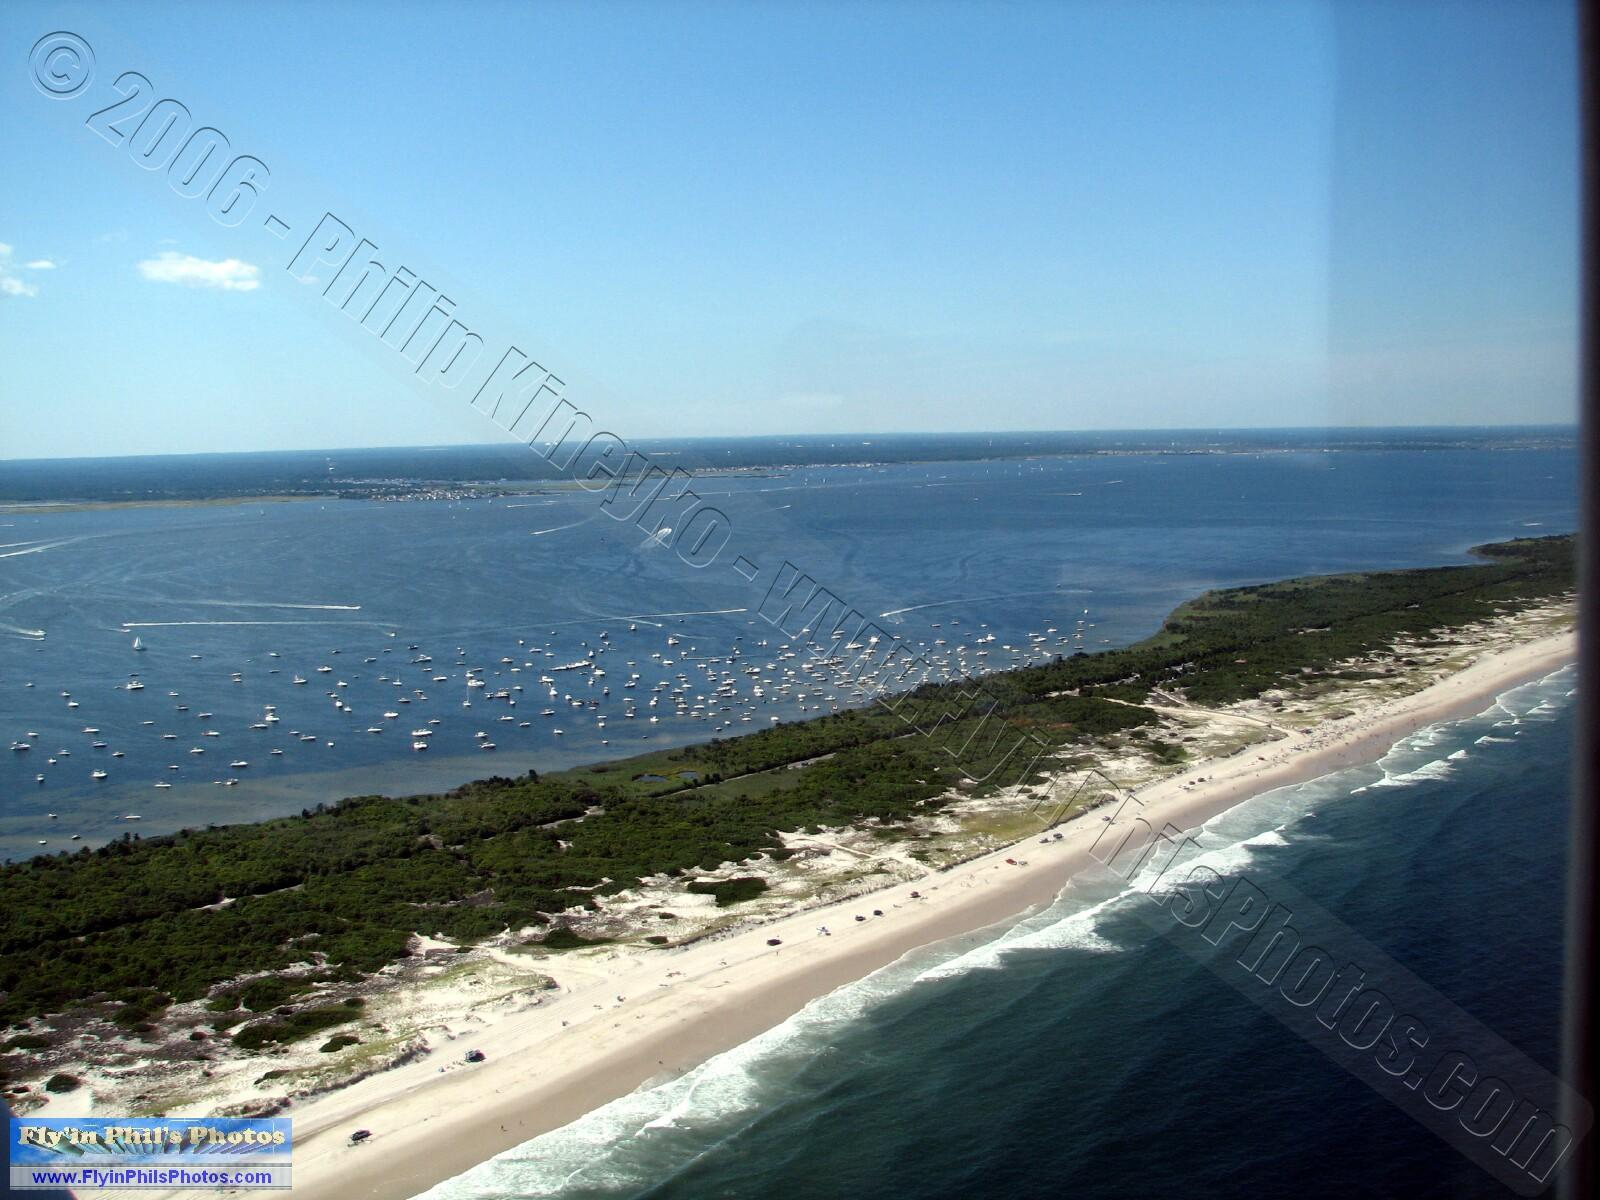 Long beach ny tide chart image collections free any chart examples nj tides chart gallery free any chart examples nj tides chart images free any chart examples nvjuhfo Images